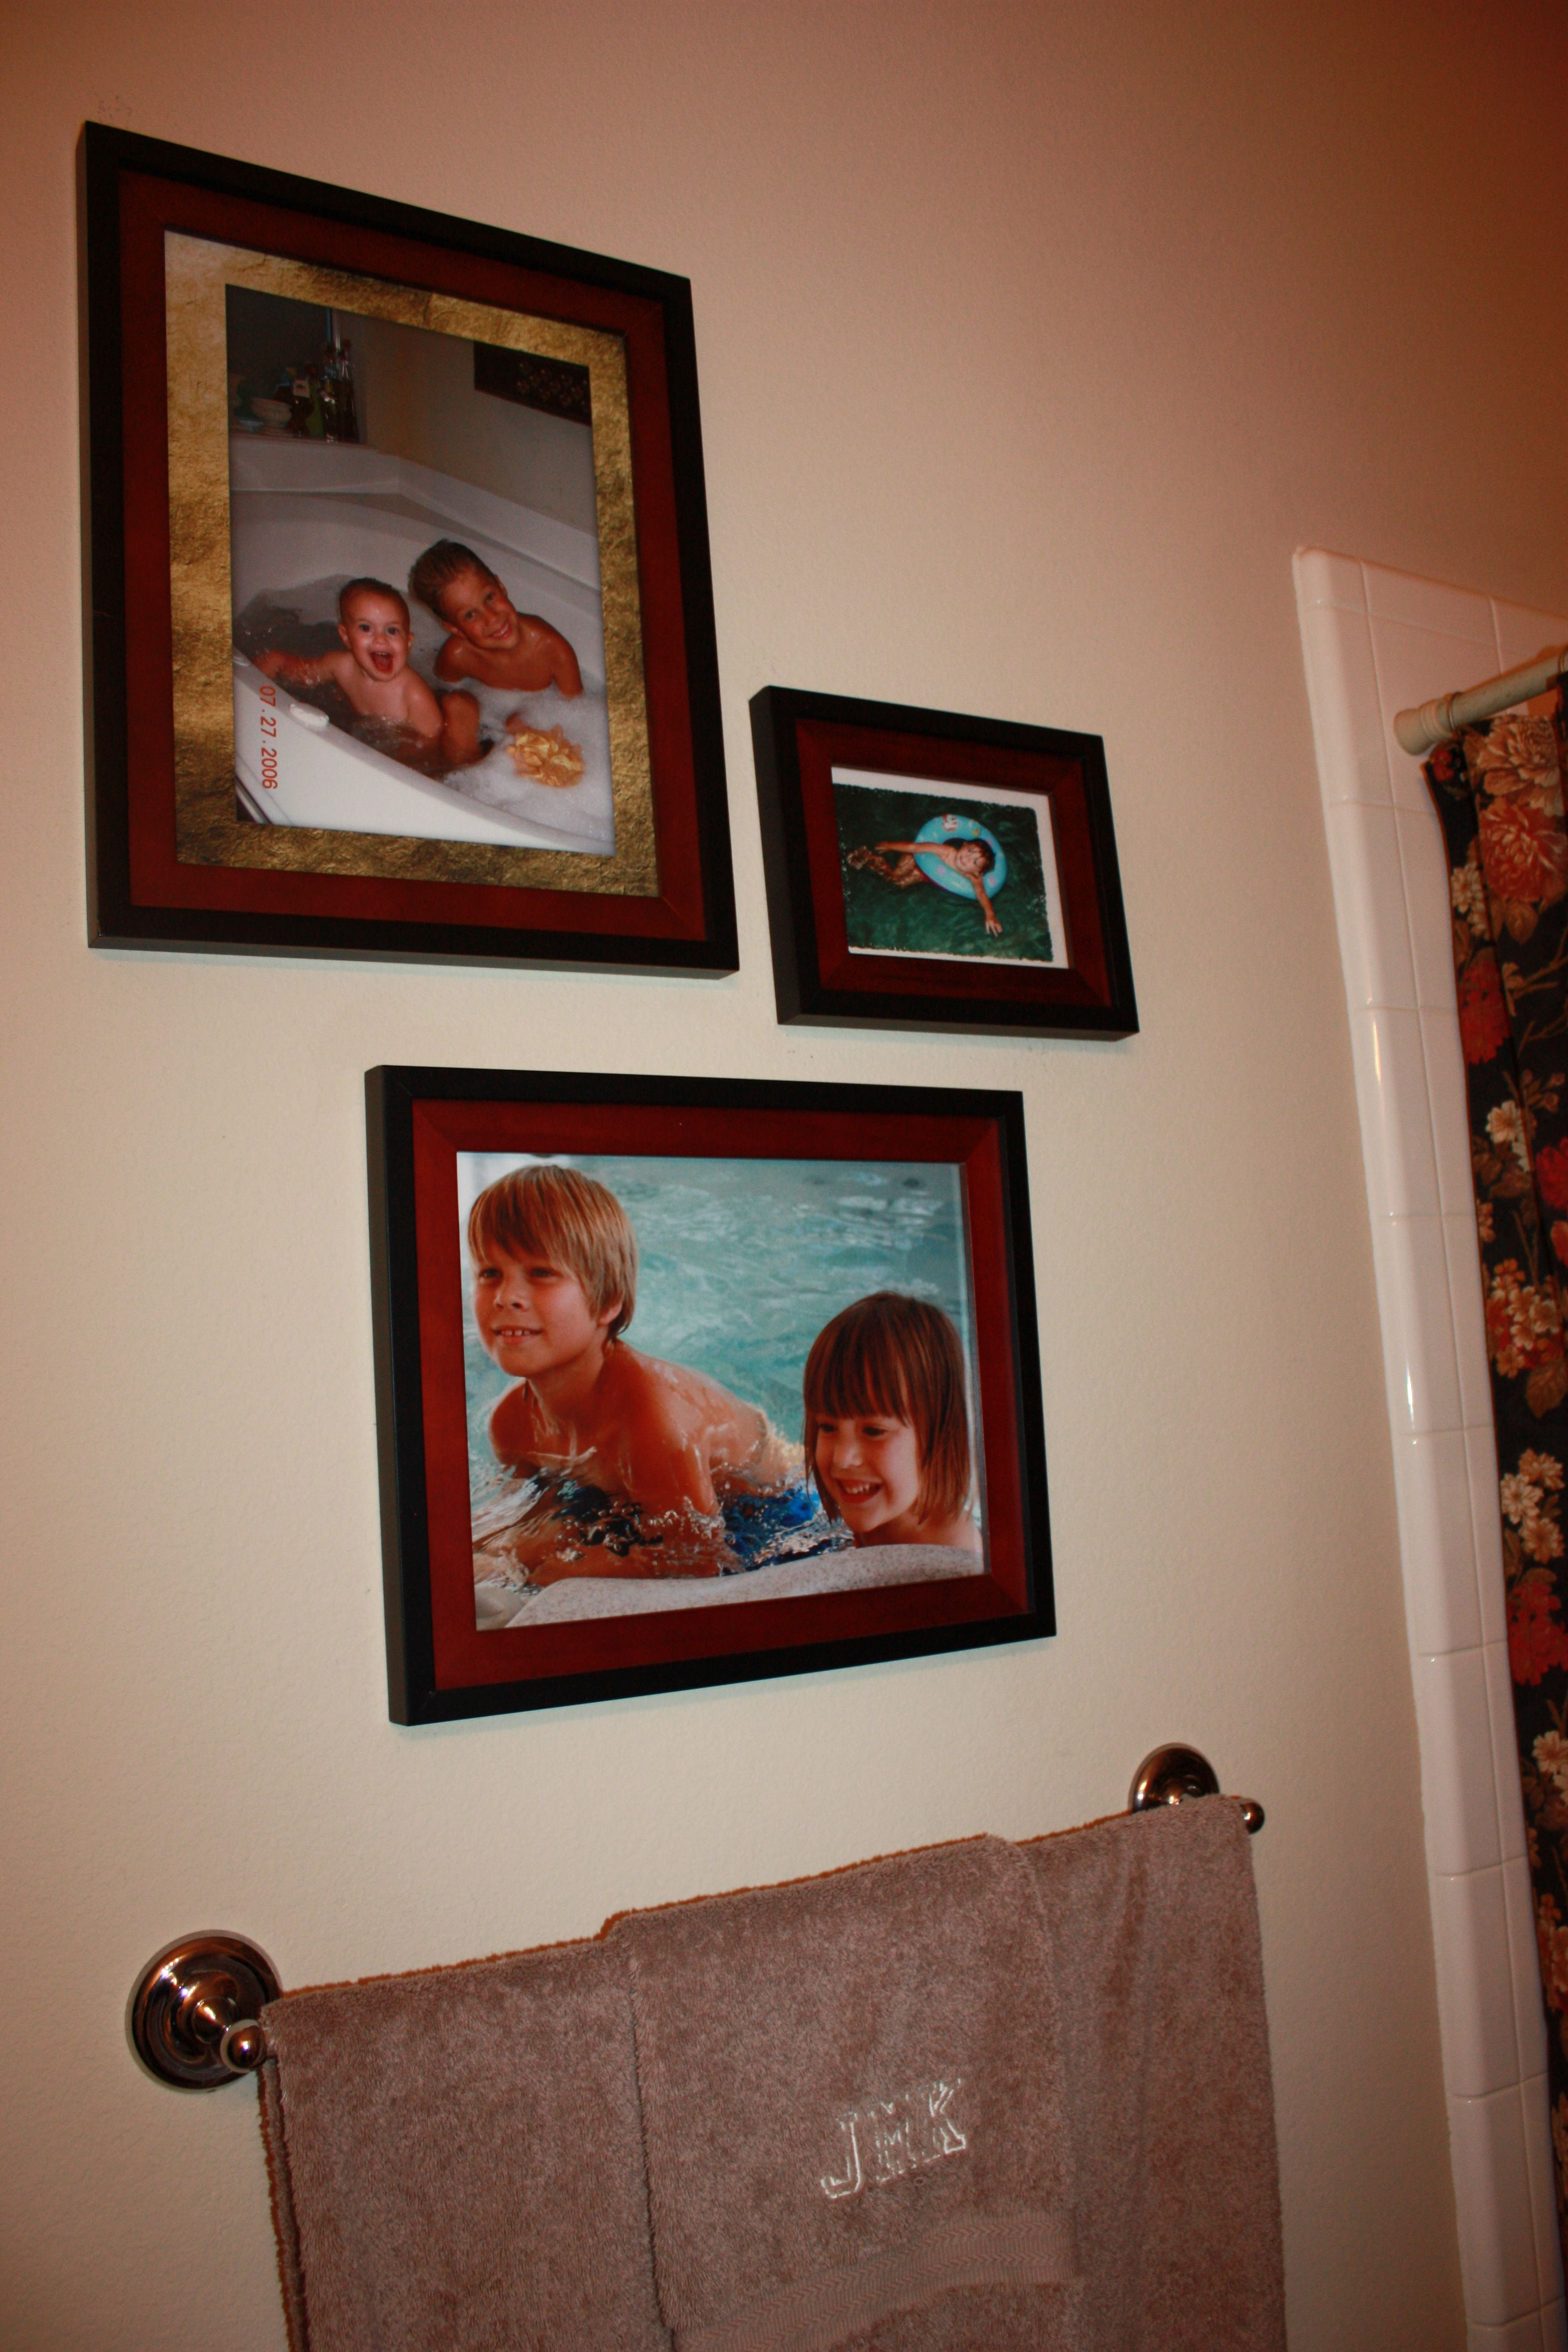 Hang photos of your children in their bathroom. Make sure they are water photo's!